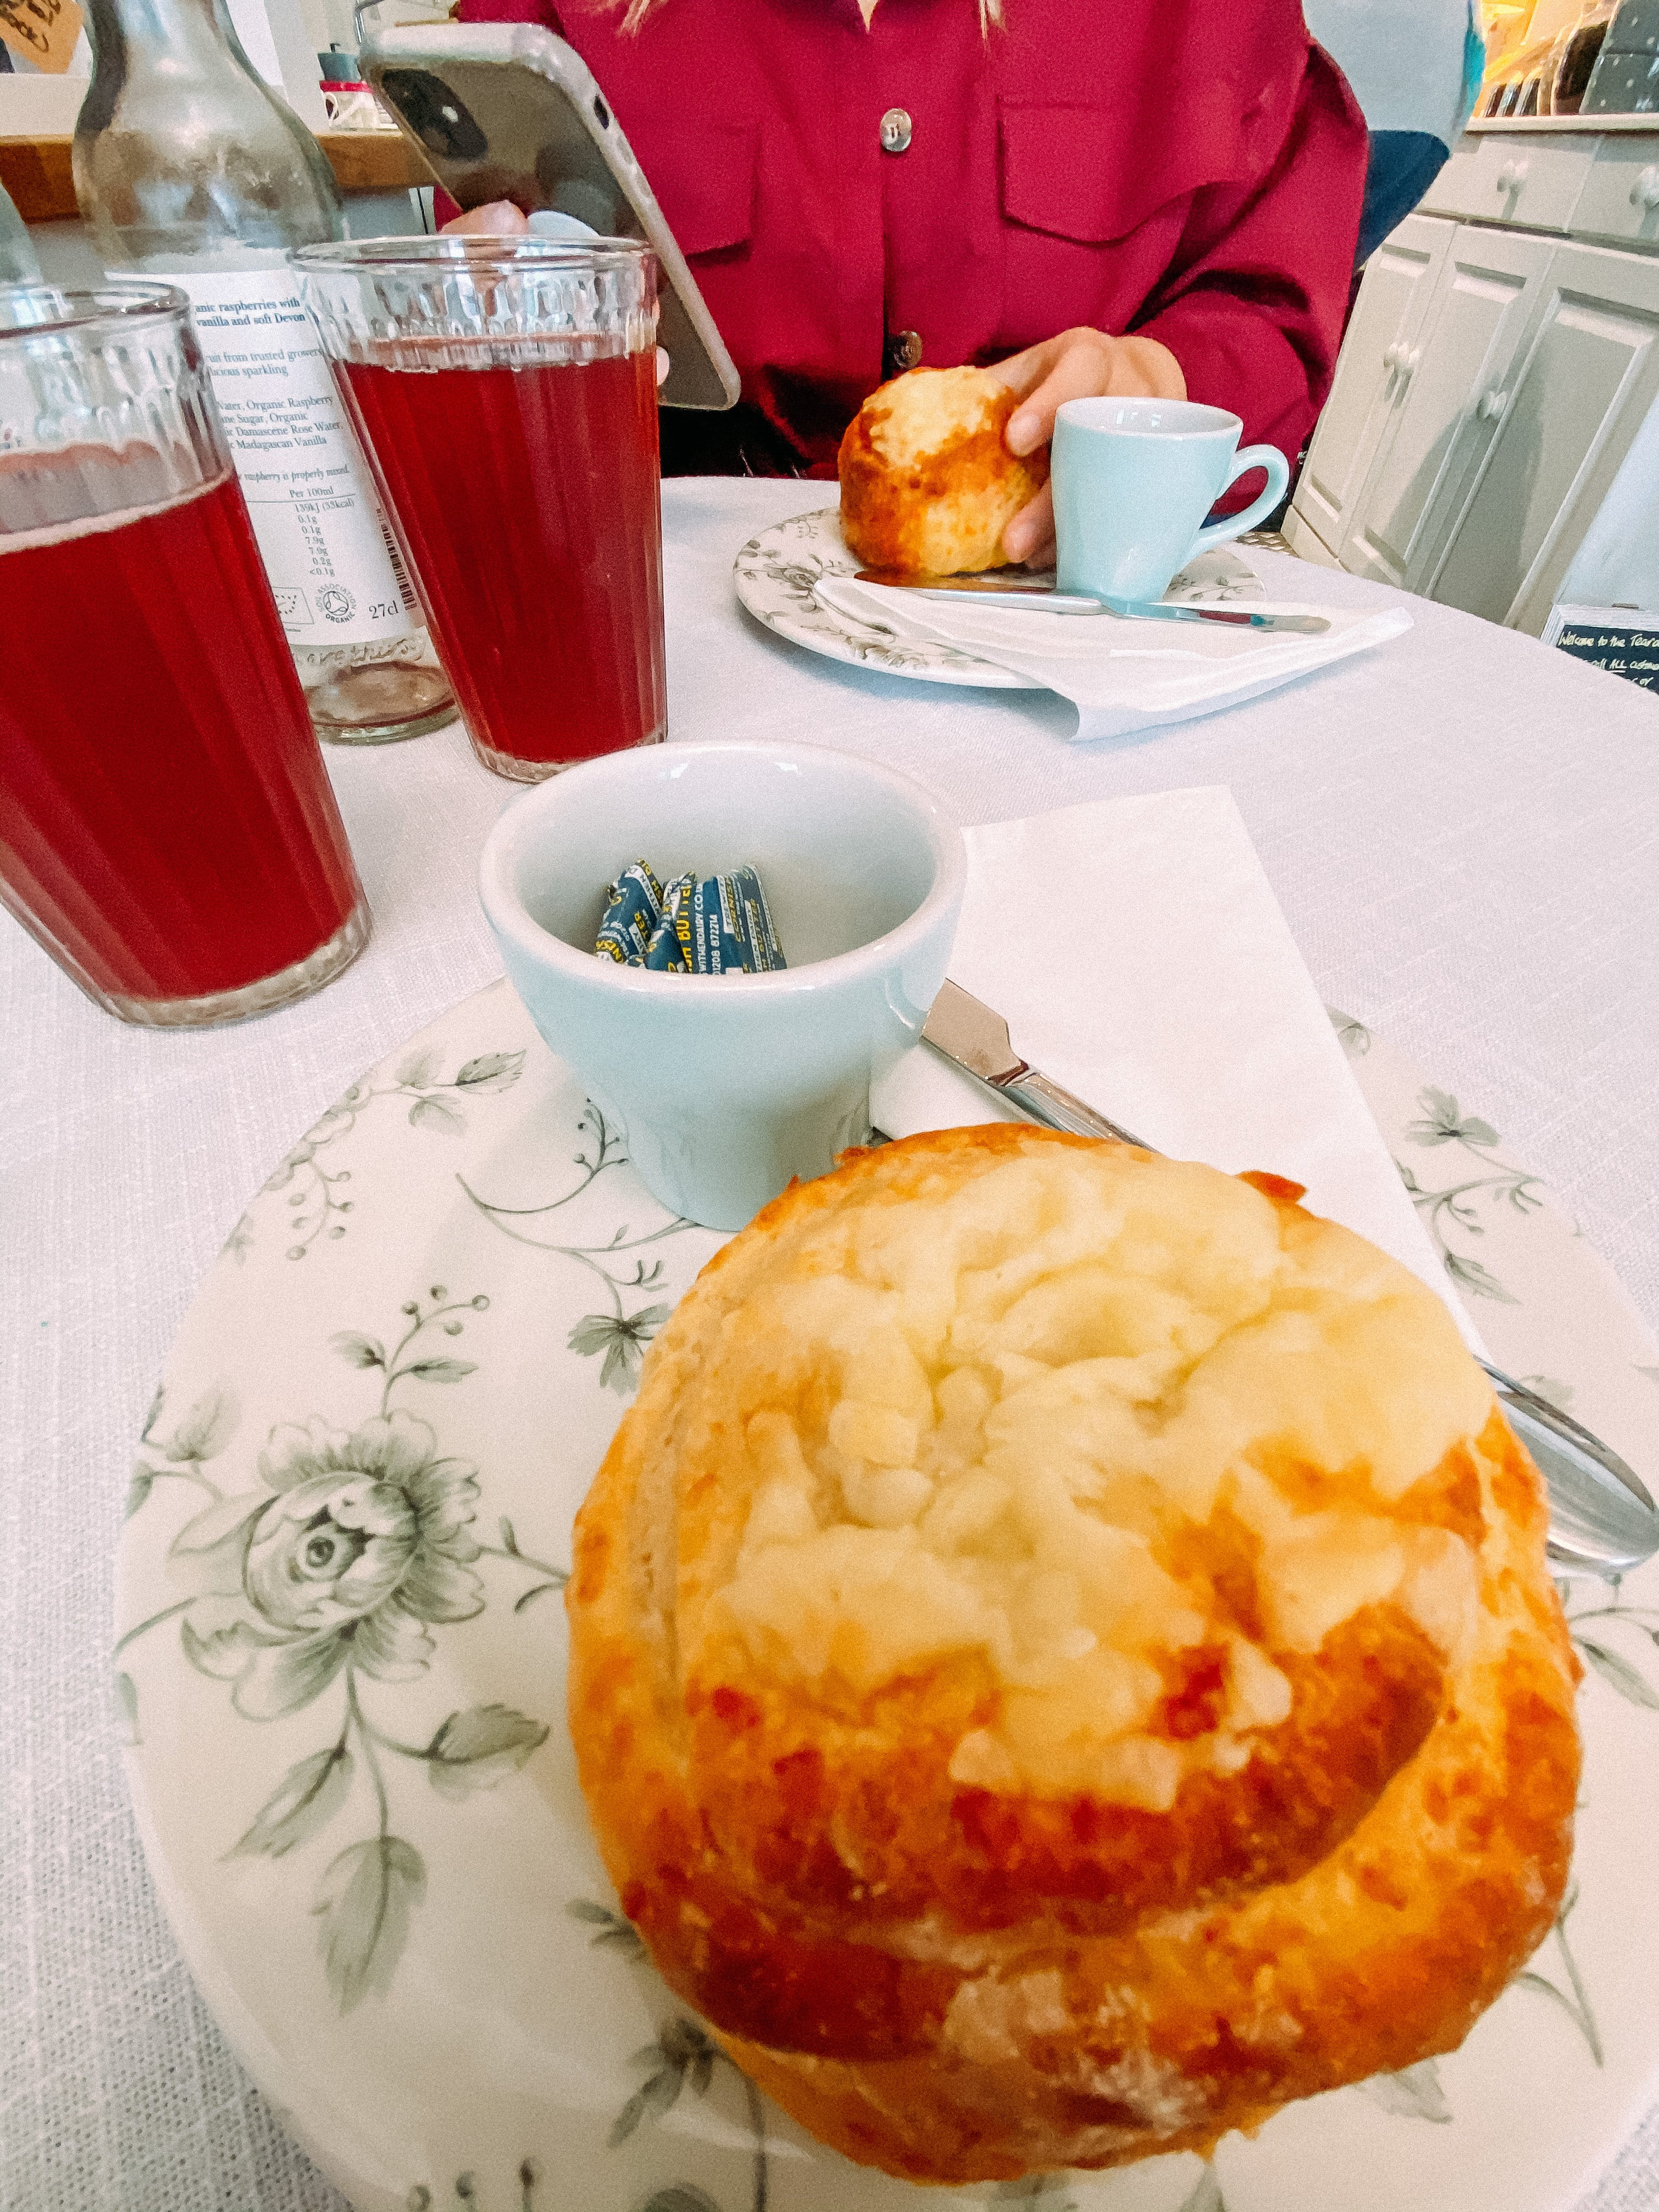 Cheese scones from upon Teacup Tearoom in Mevagissey, Cornwall